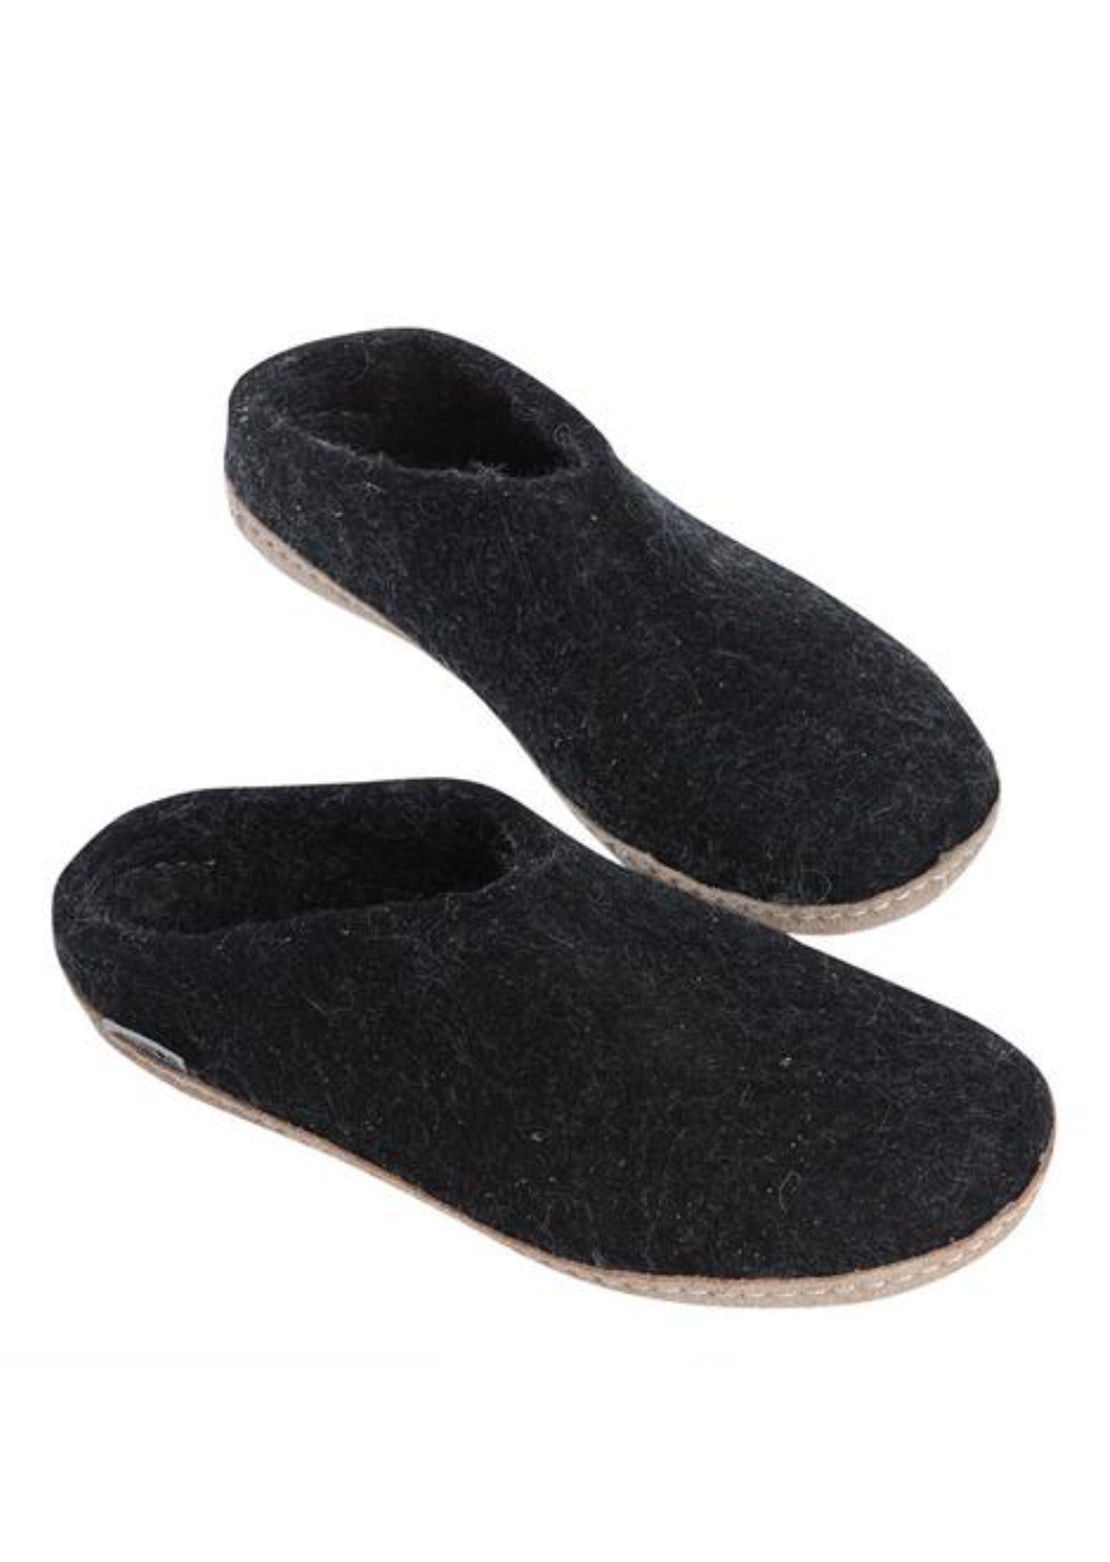 Glerups Unisex Leather Sole Slippers Black